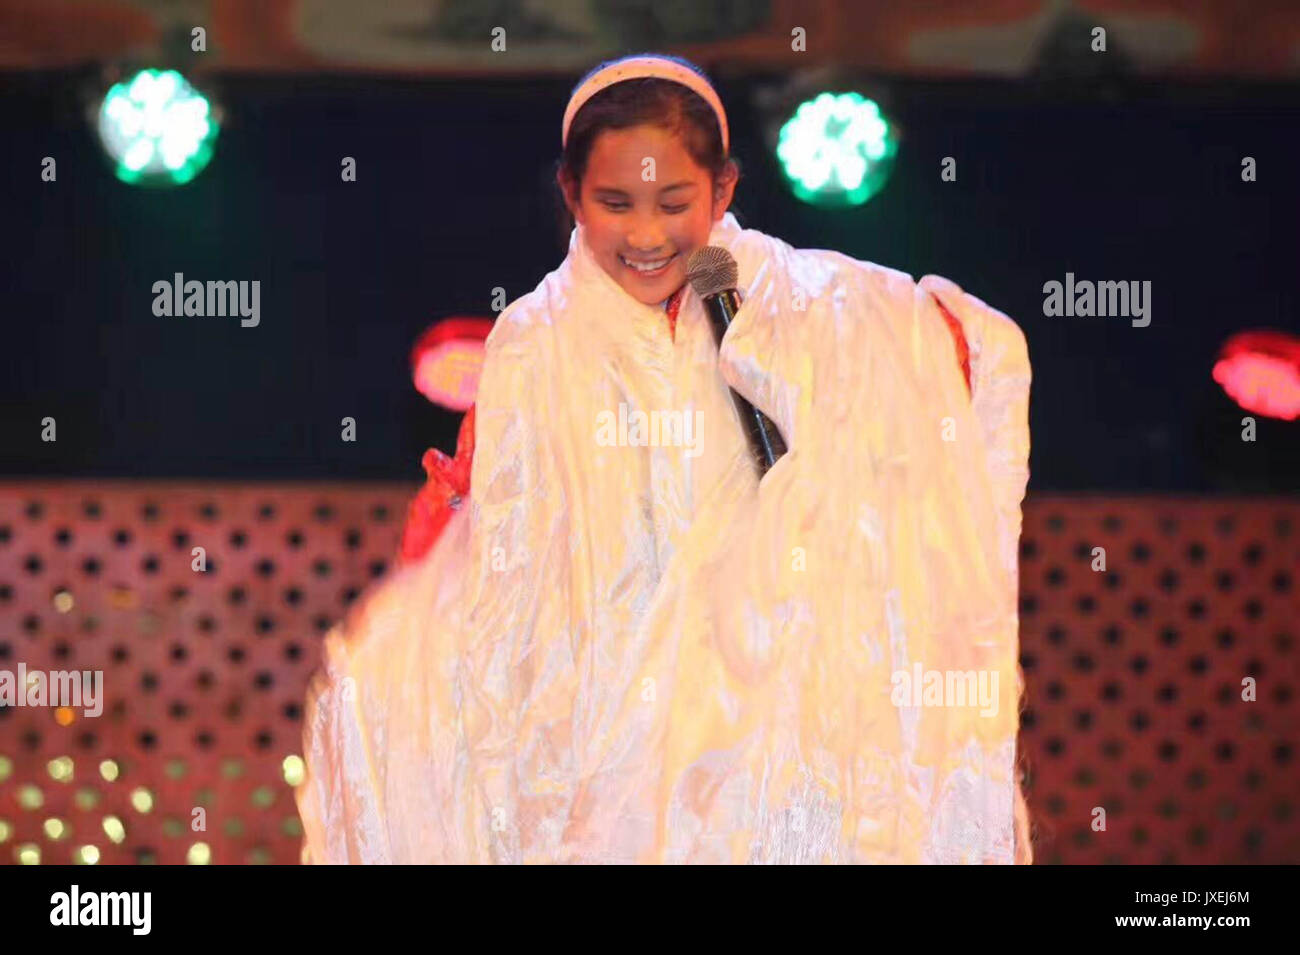 (170816) -- XIAHE, Aug. 16, 2017 (Xinhua) -- File photo taken in 2009 shows Deqen Yuzhen covered with hadas after performing at a party in the school for blind children at southwest China's Tibet Autonomous Region. Deqen Yuzhen, who was born on Sept. 14, 1998, is the daughter of a herdsman family in Maqu County, Gannan Tibetan Autonomous Prefecture, northwest China's Gansu Province. Unfortunately she lost her sight due to a serious illness when she was a baby. She was sent to the school for blind children in southwest China's Tibet Autonomous Region at the age of nine and transferred to blind - Stock Image